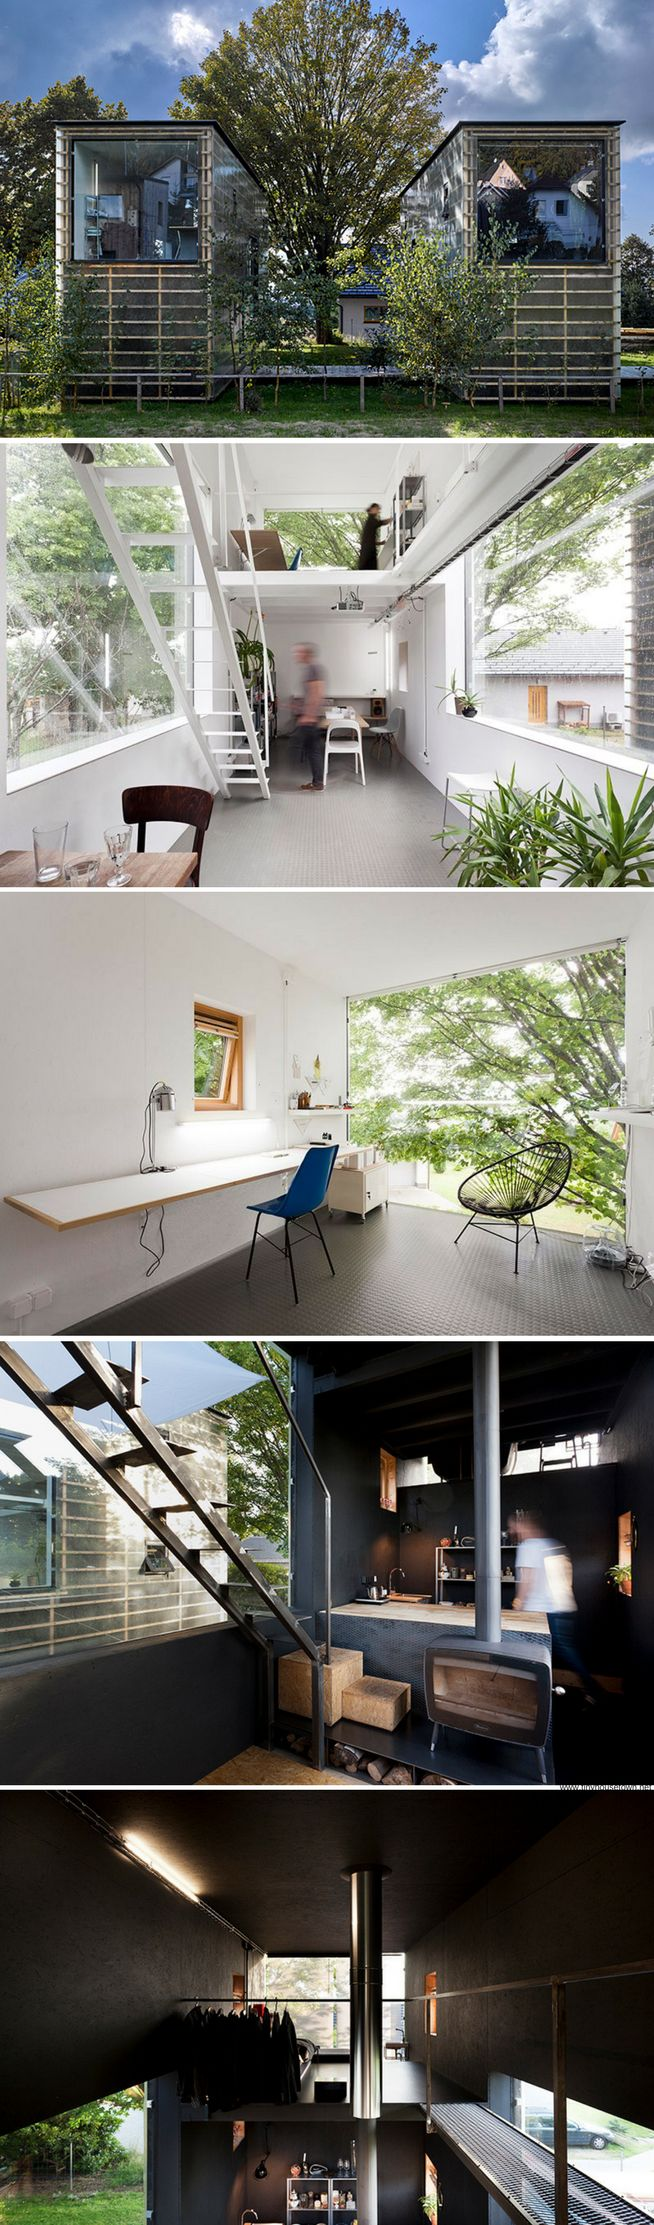 The Zen Houses: one's a home and the other is an office!